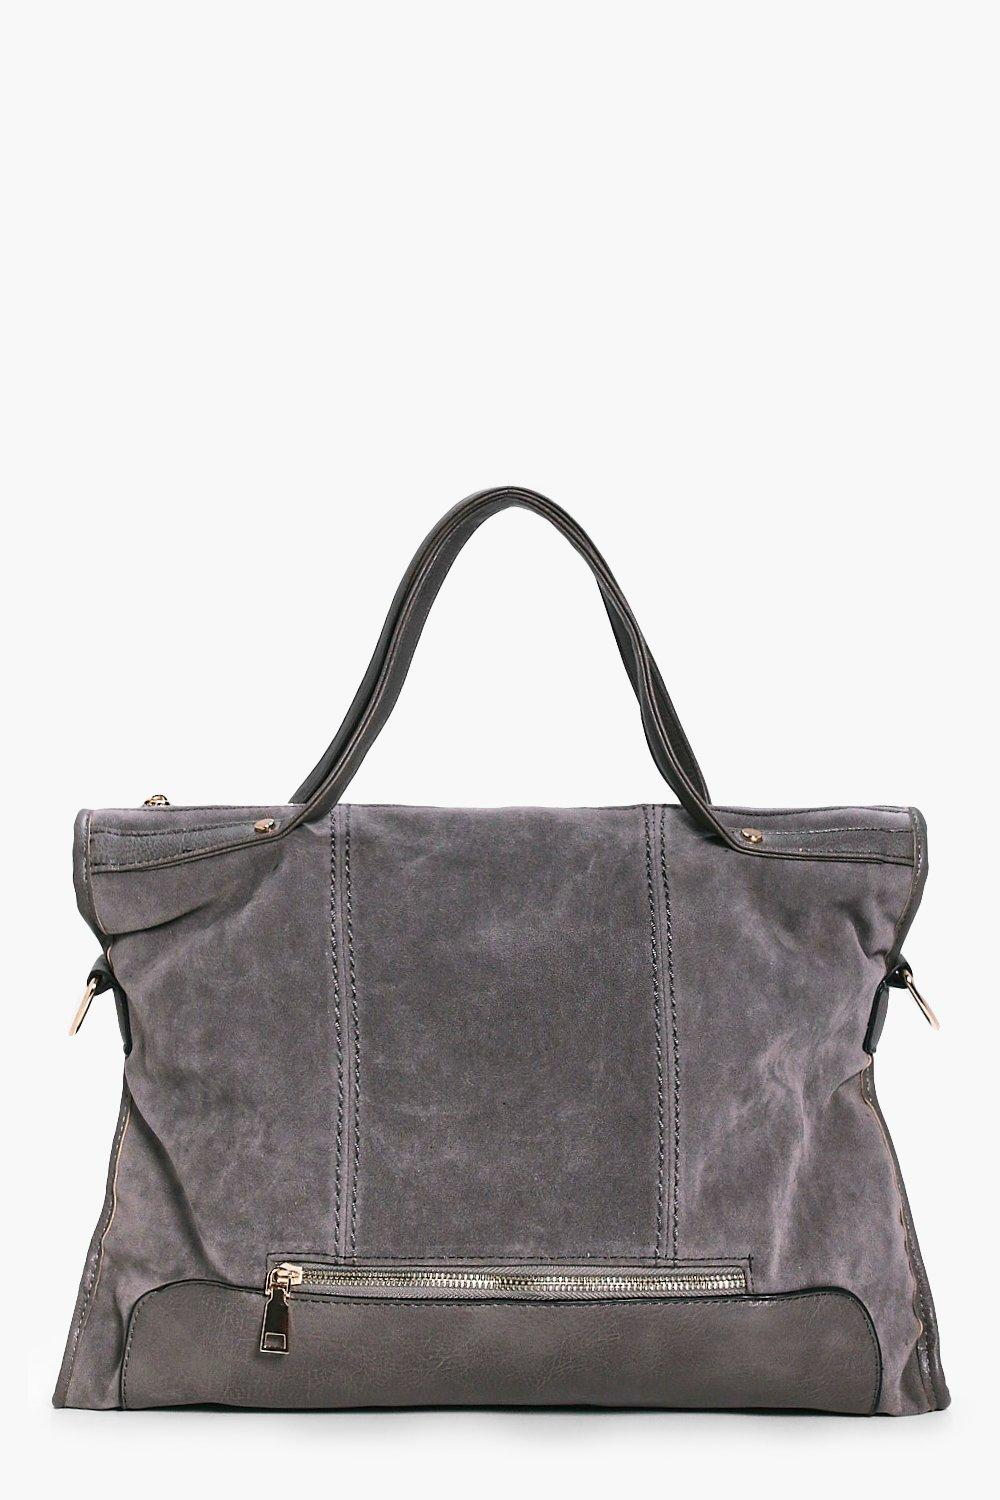 Suedette Metal Detail Holdall Bag - grey - Jemima